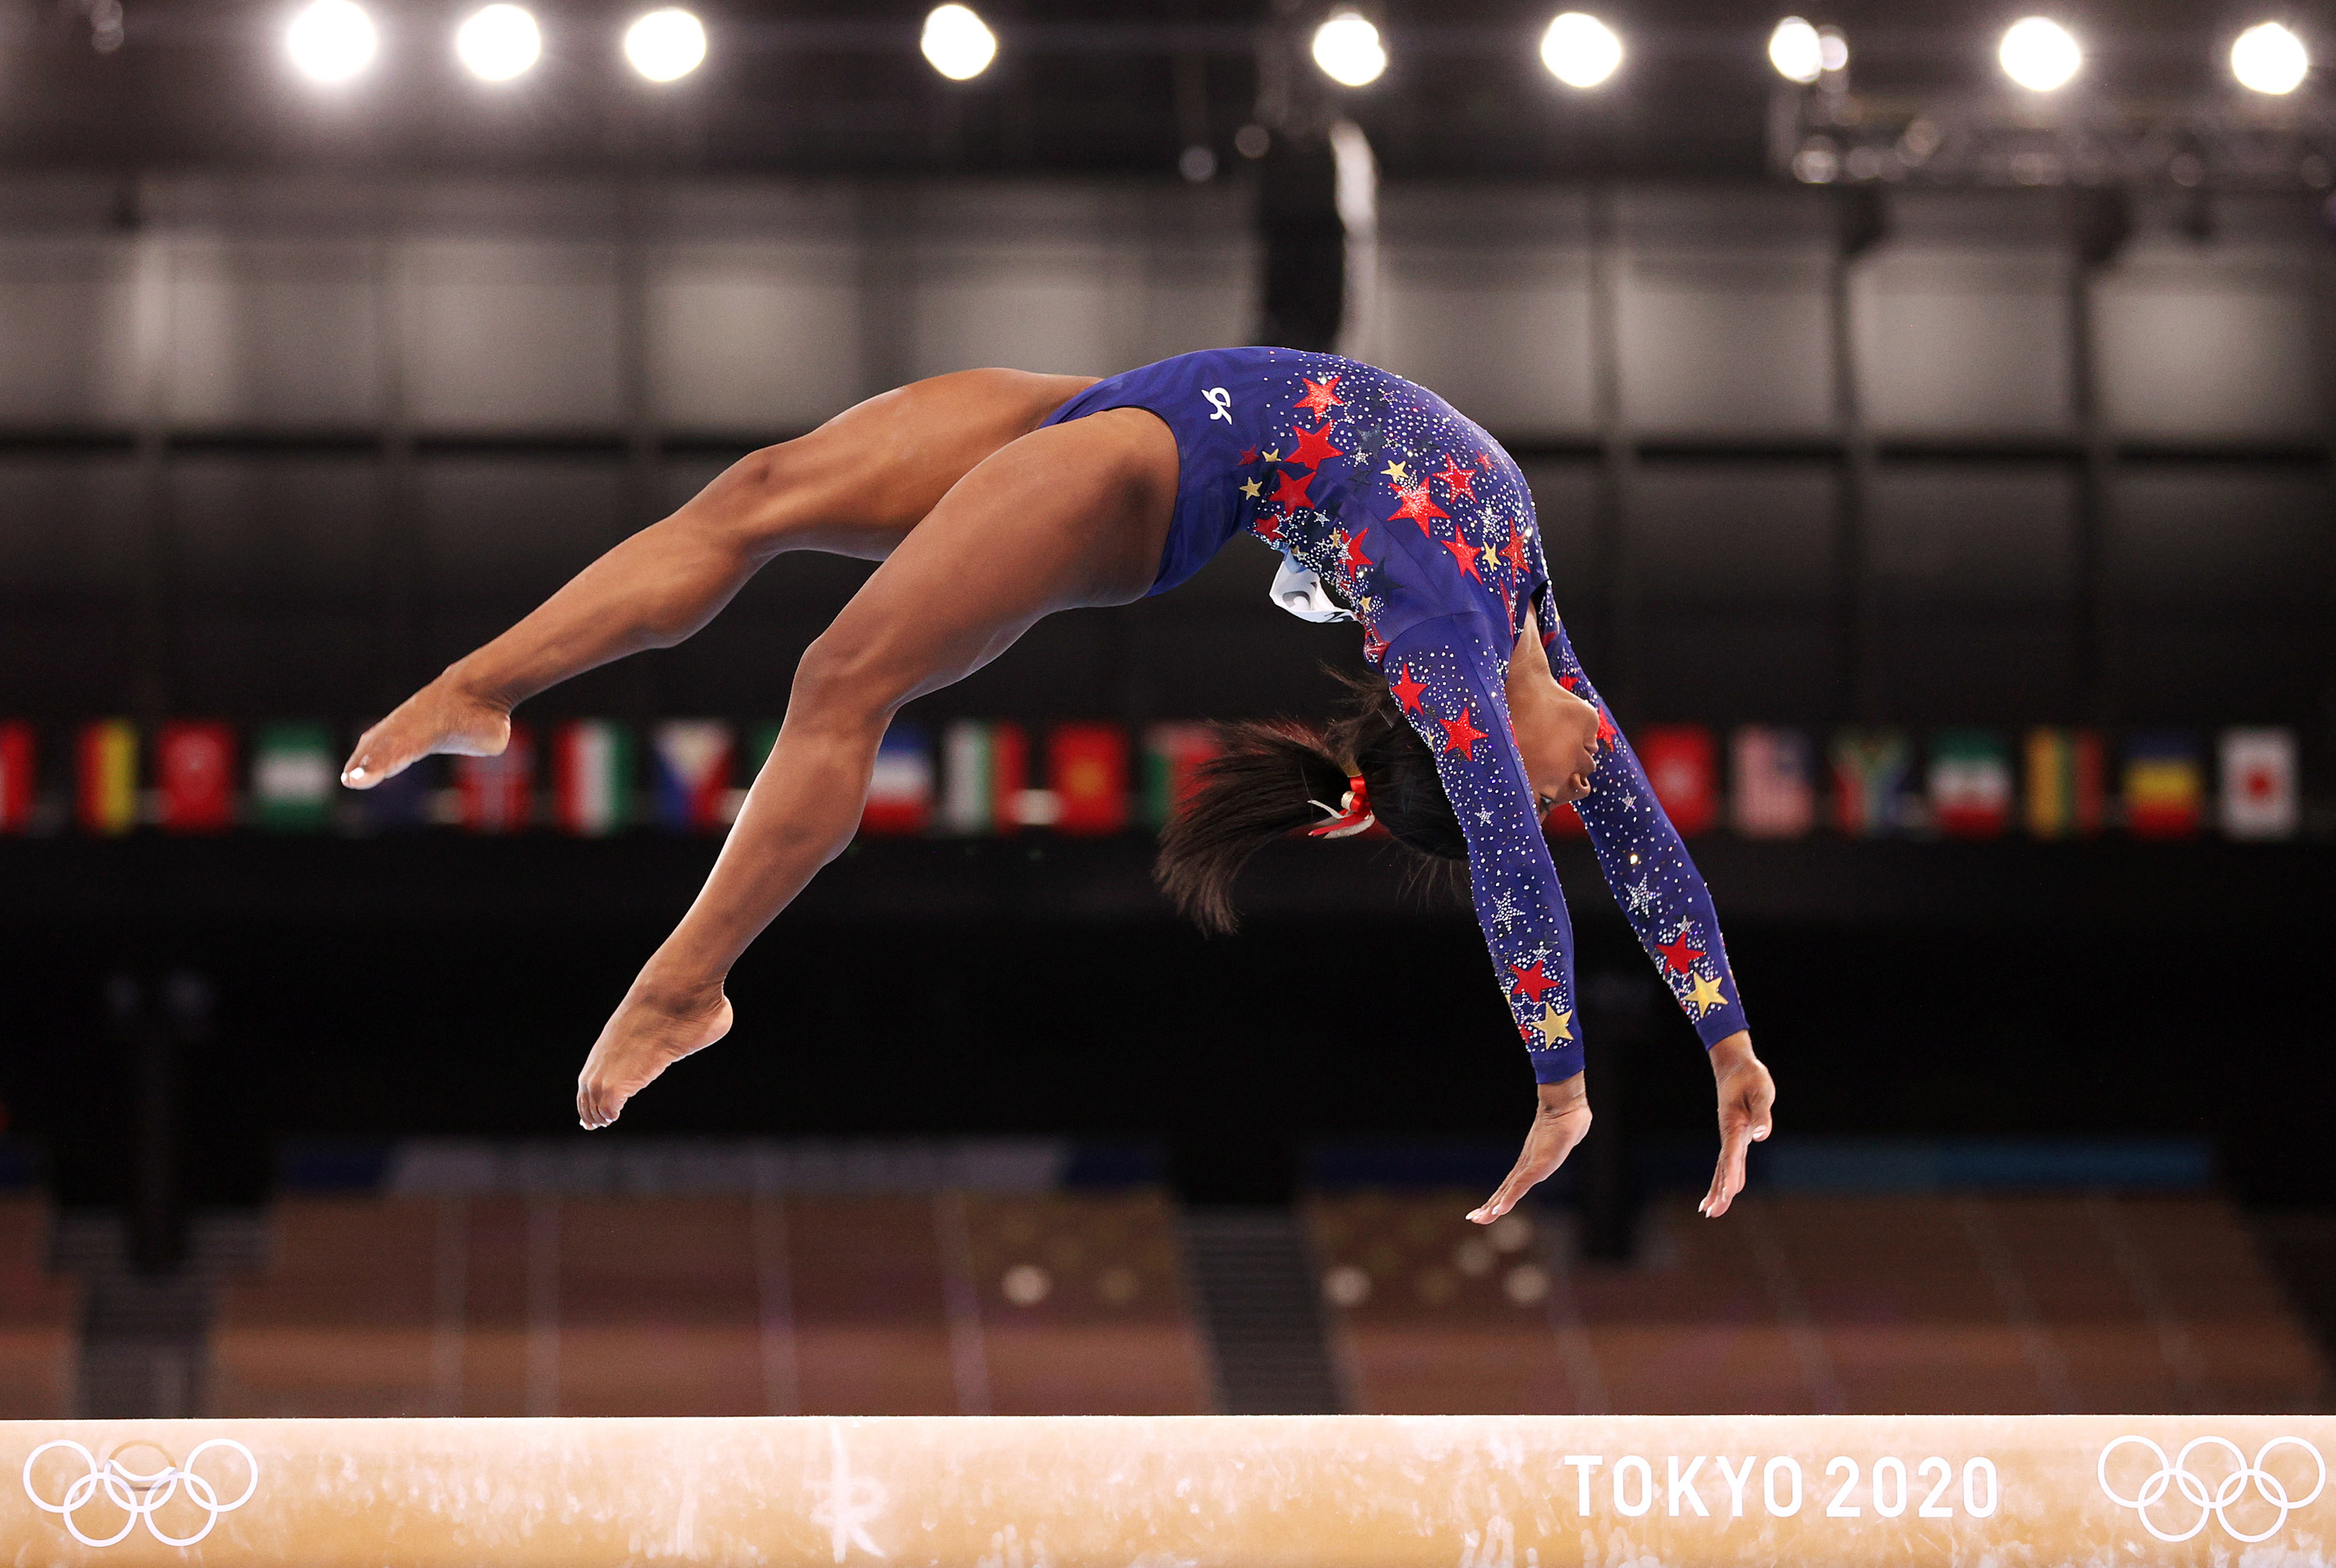 Simone Biles competes on balance beam during gymnastics qualification rounds at the 2020 Tokyo Olympic Games